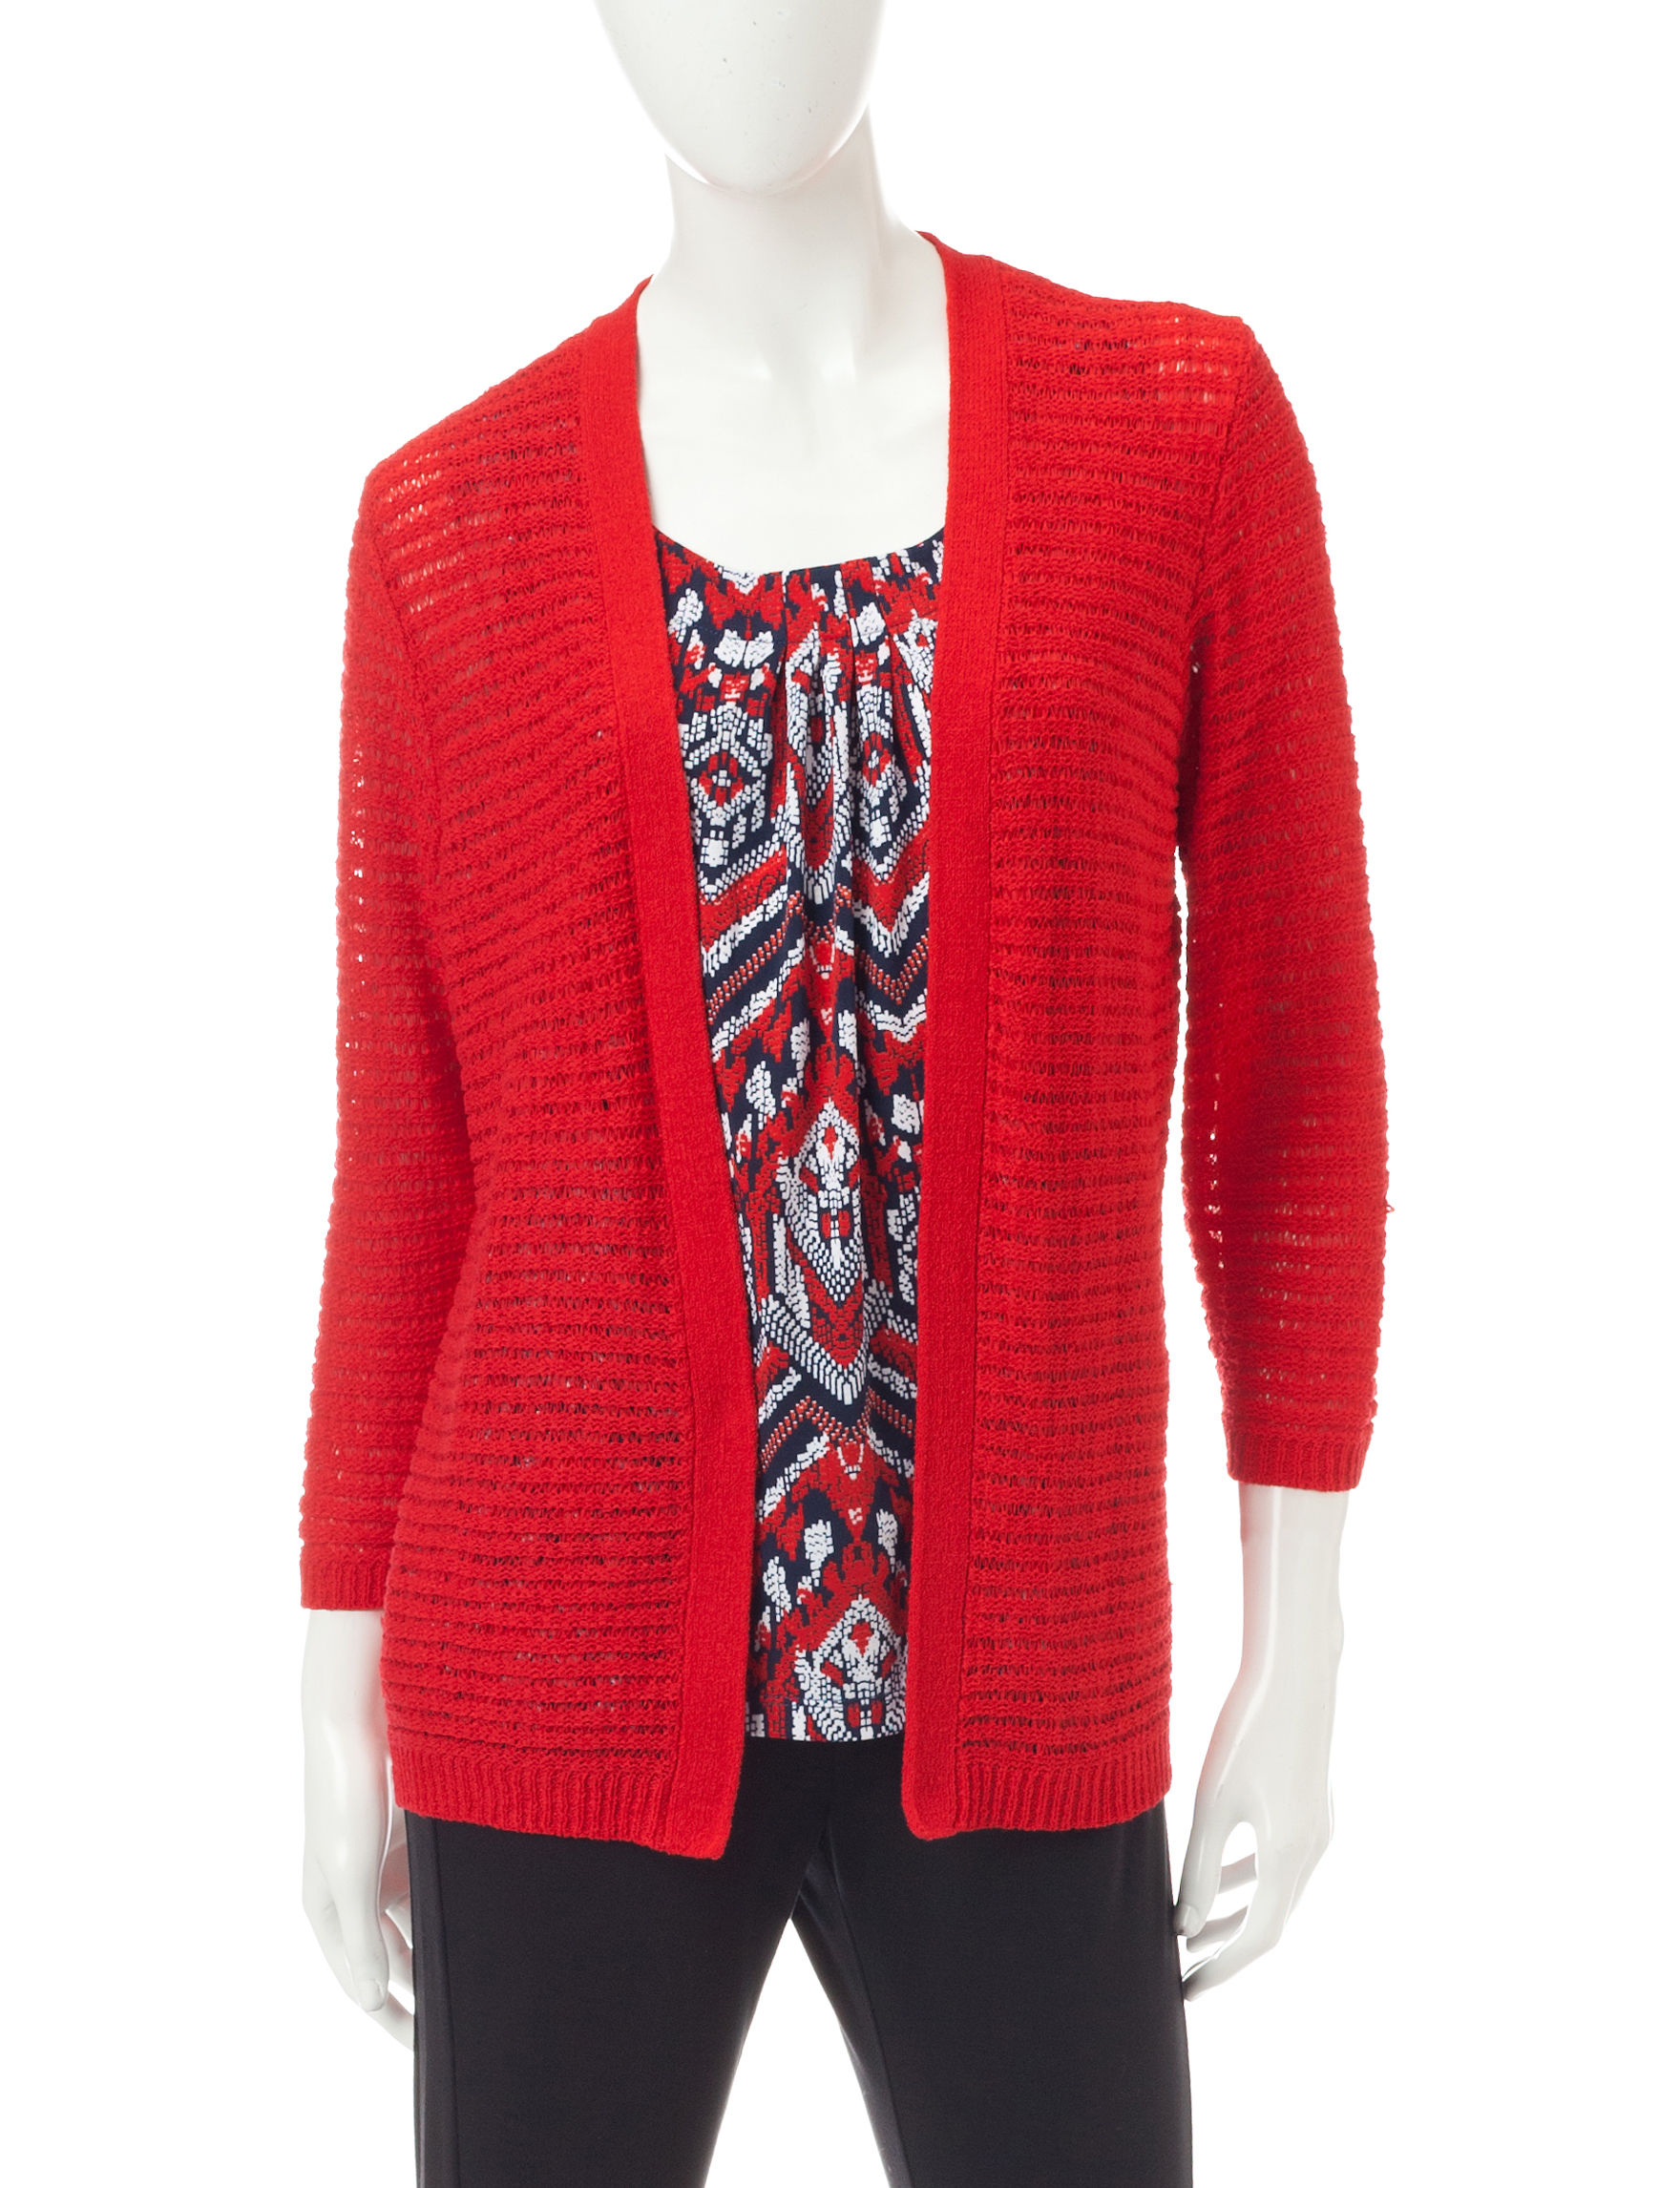 Alfred Dunner Red Cardigans